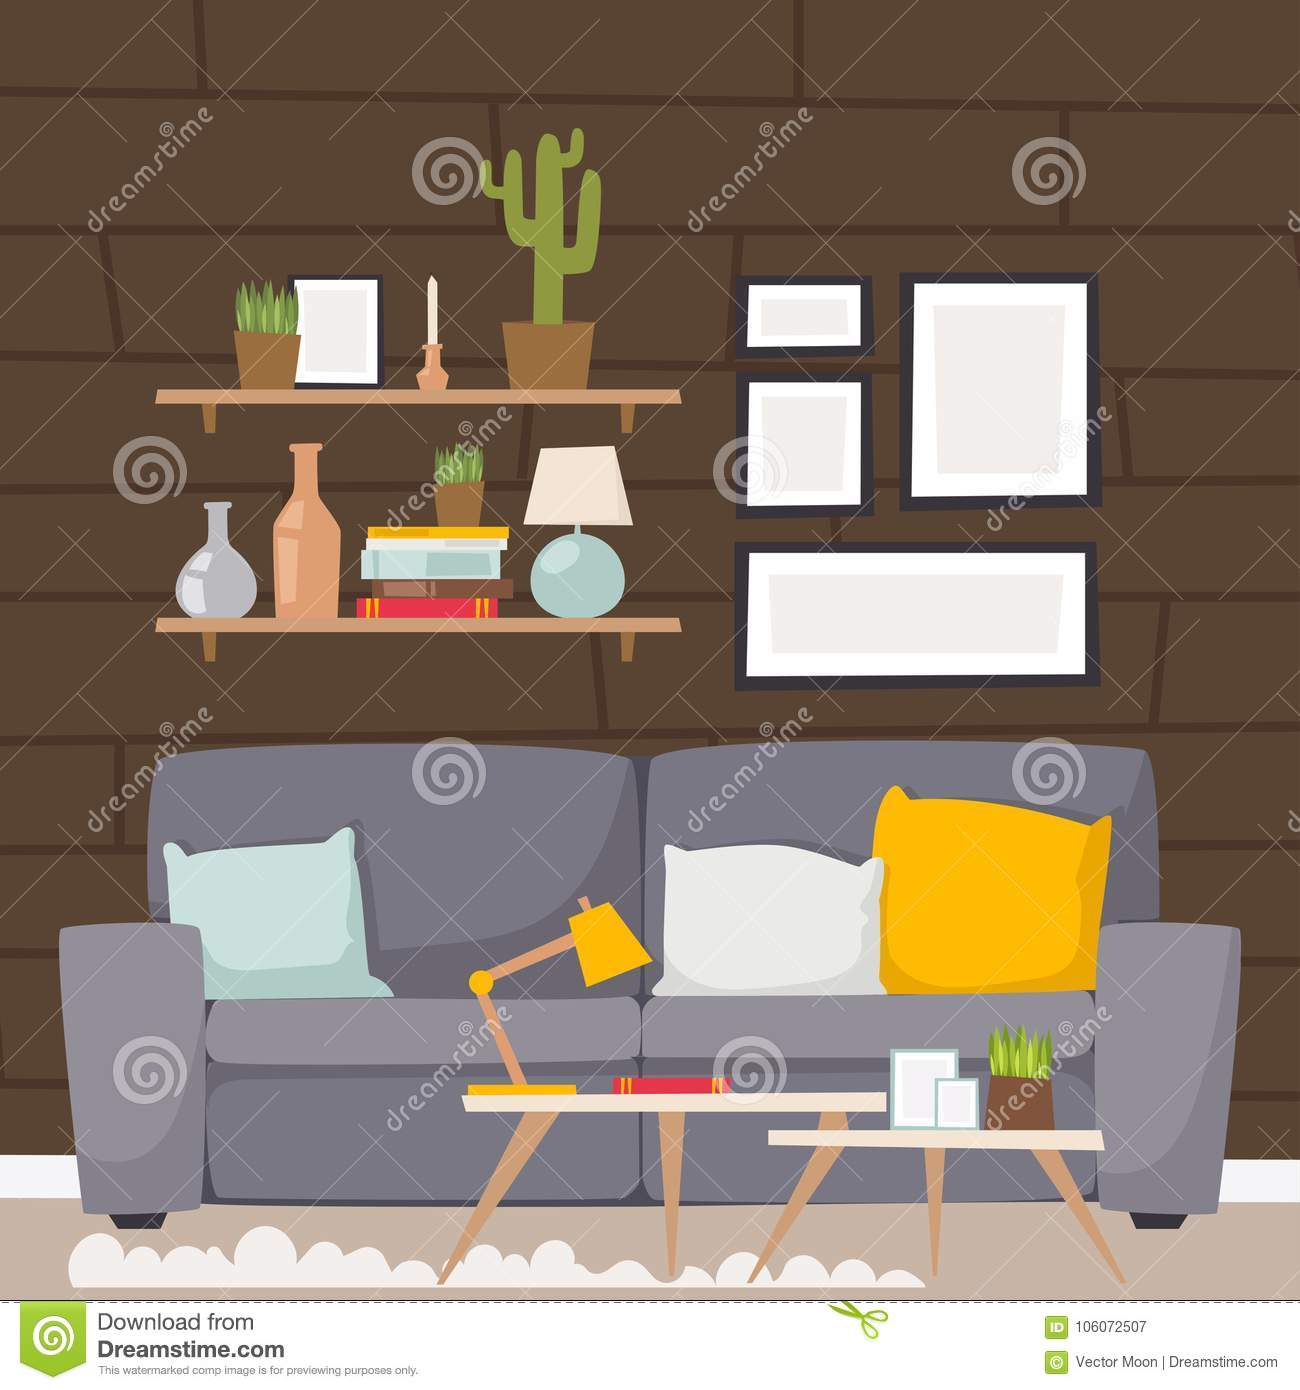 Furniture vector room interior design apartment home decor for Apartment design vector